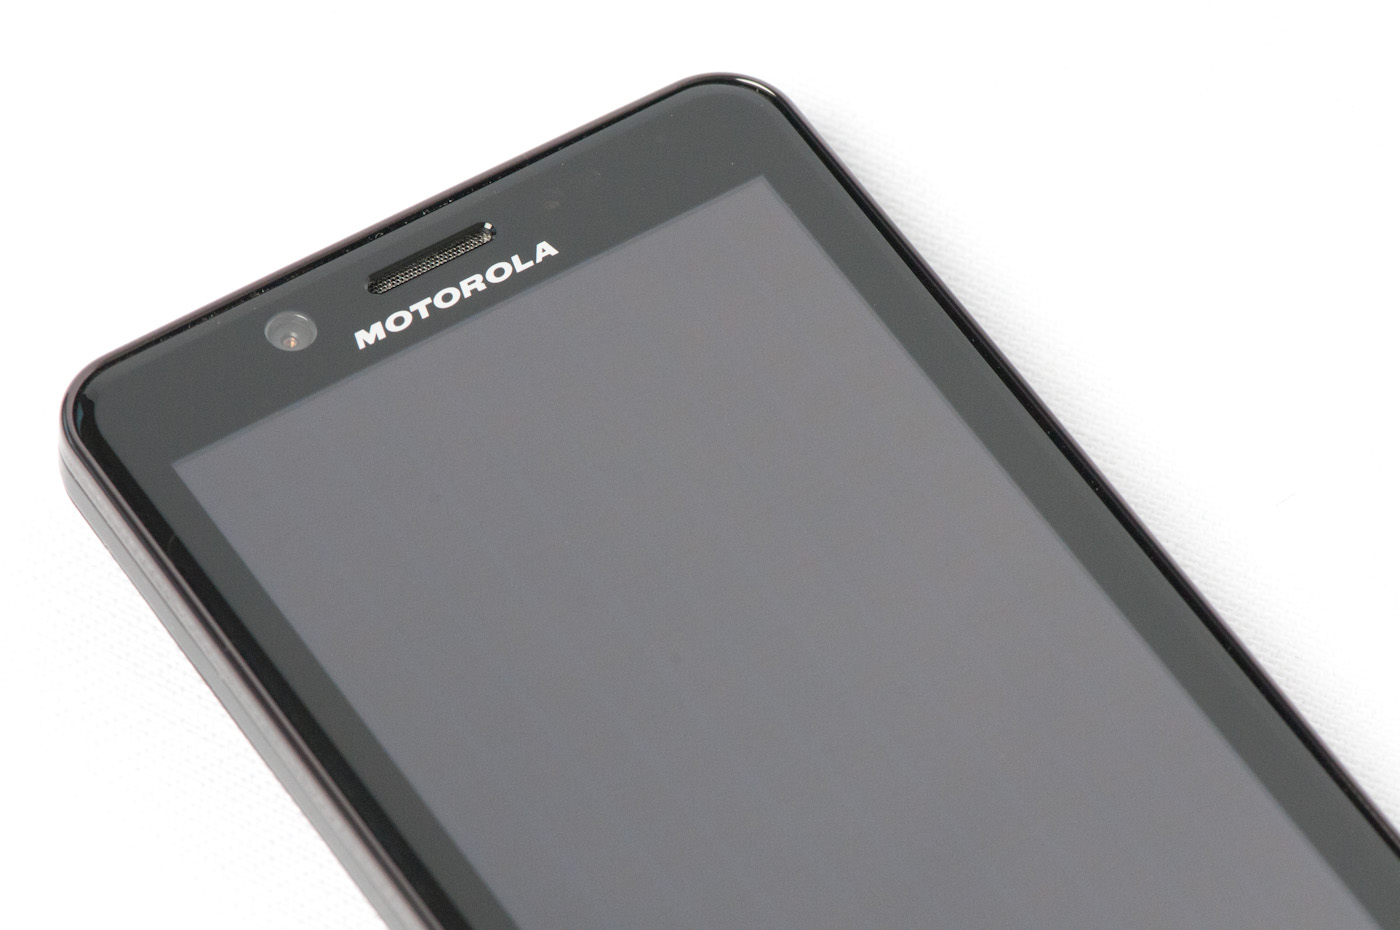 Motorola Droid Bionic Review Dual Core With 4g Lte A Smartphone Dock Built Inside Mans Prosthetic Arm Its Nothing That Microfiber Cloth Cant Take Care Of And Honestly Isnt As Big An Issue Dust Collection In Virtually Every Earpiece